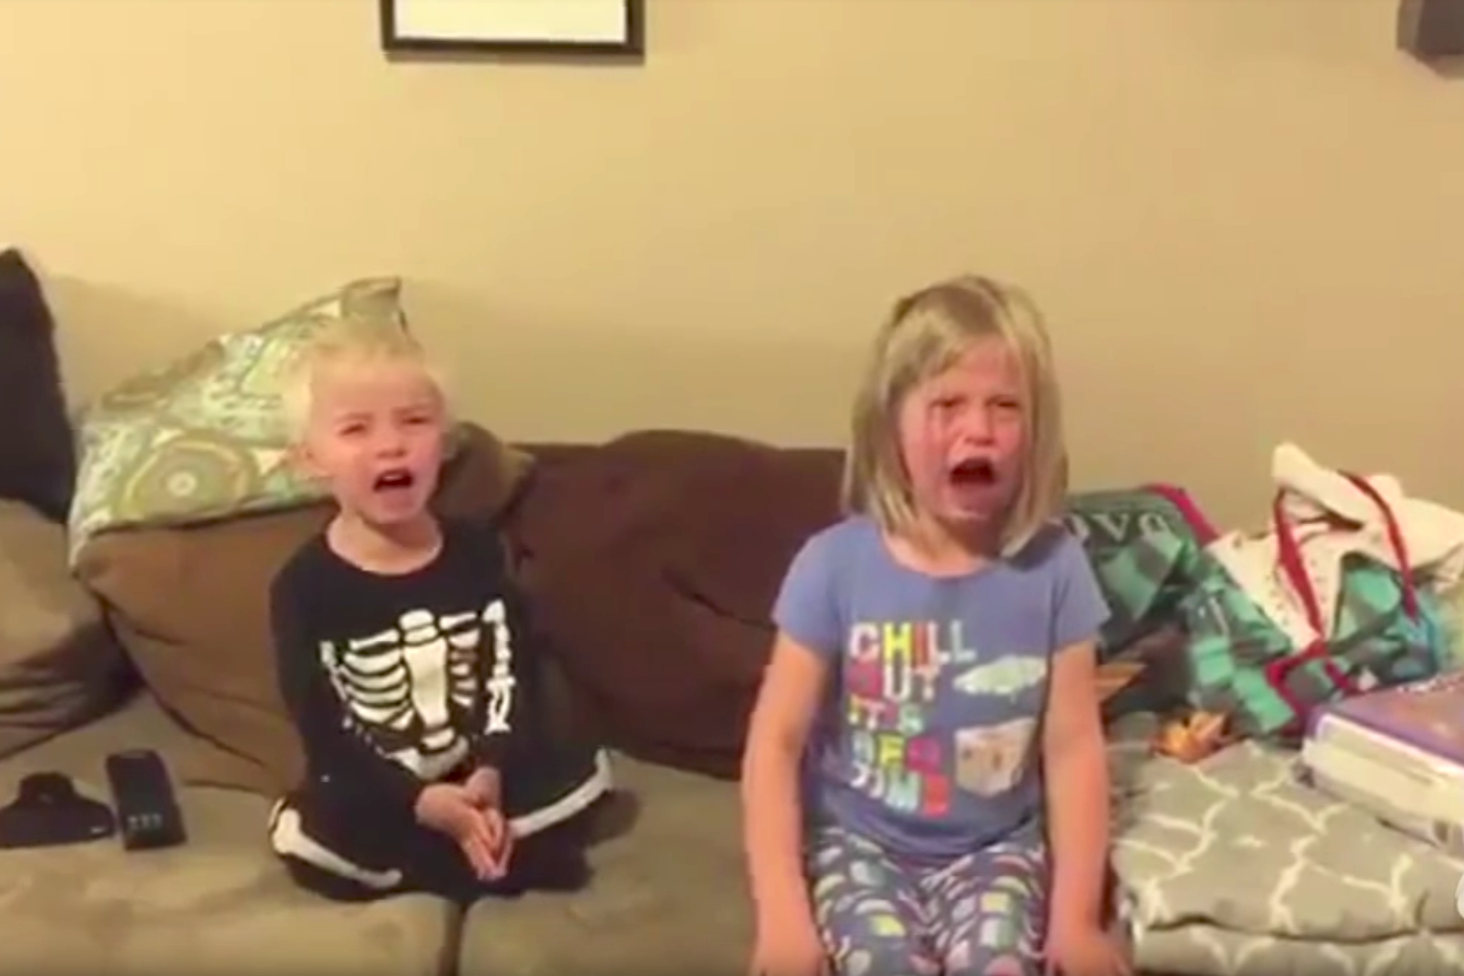 Jimmy Kimmel's Annual 'I Ate Your Halloween Candy Prank' Is Back and It's Fabulous